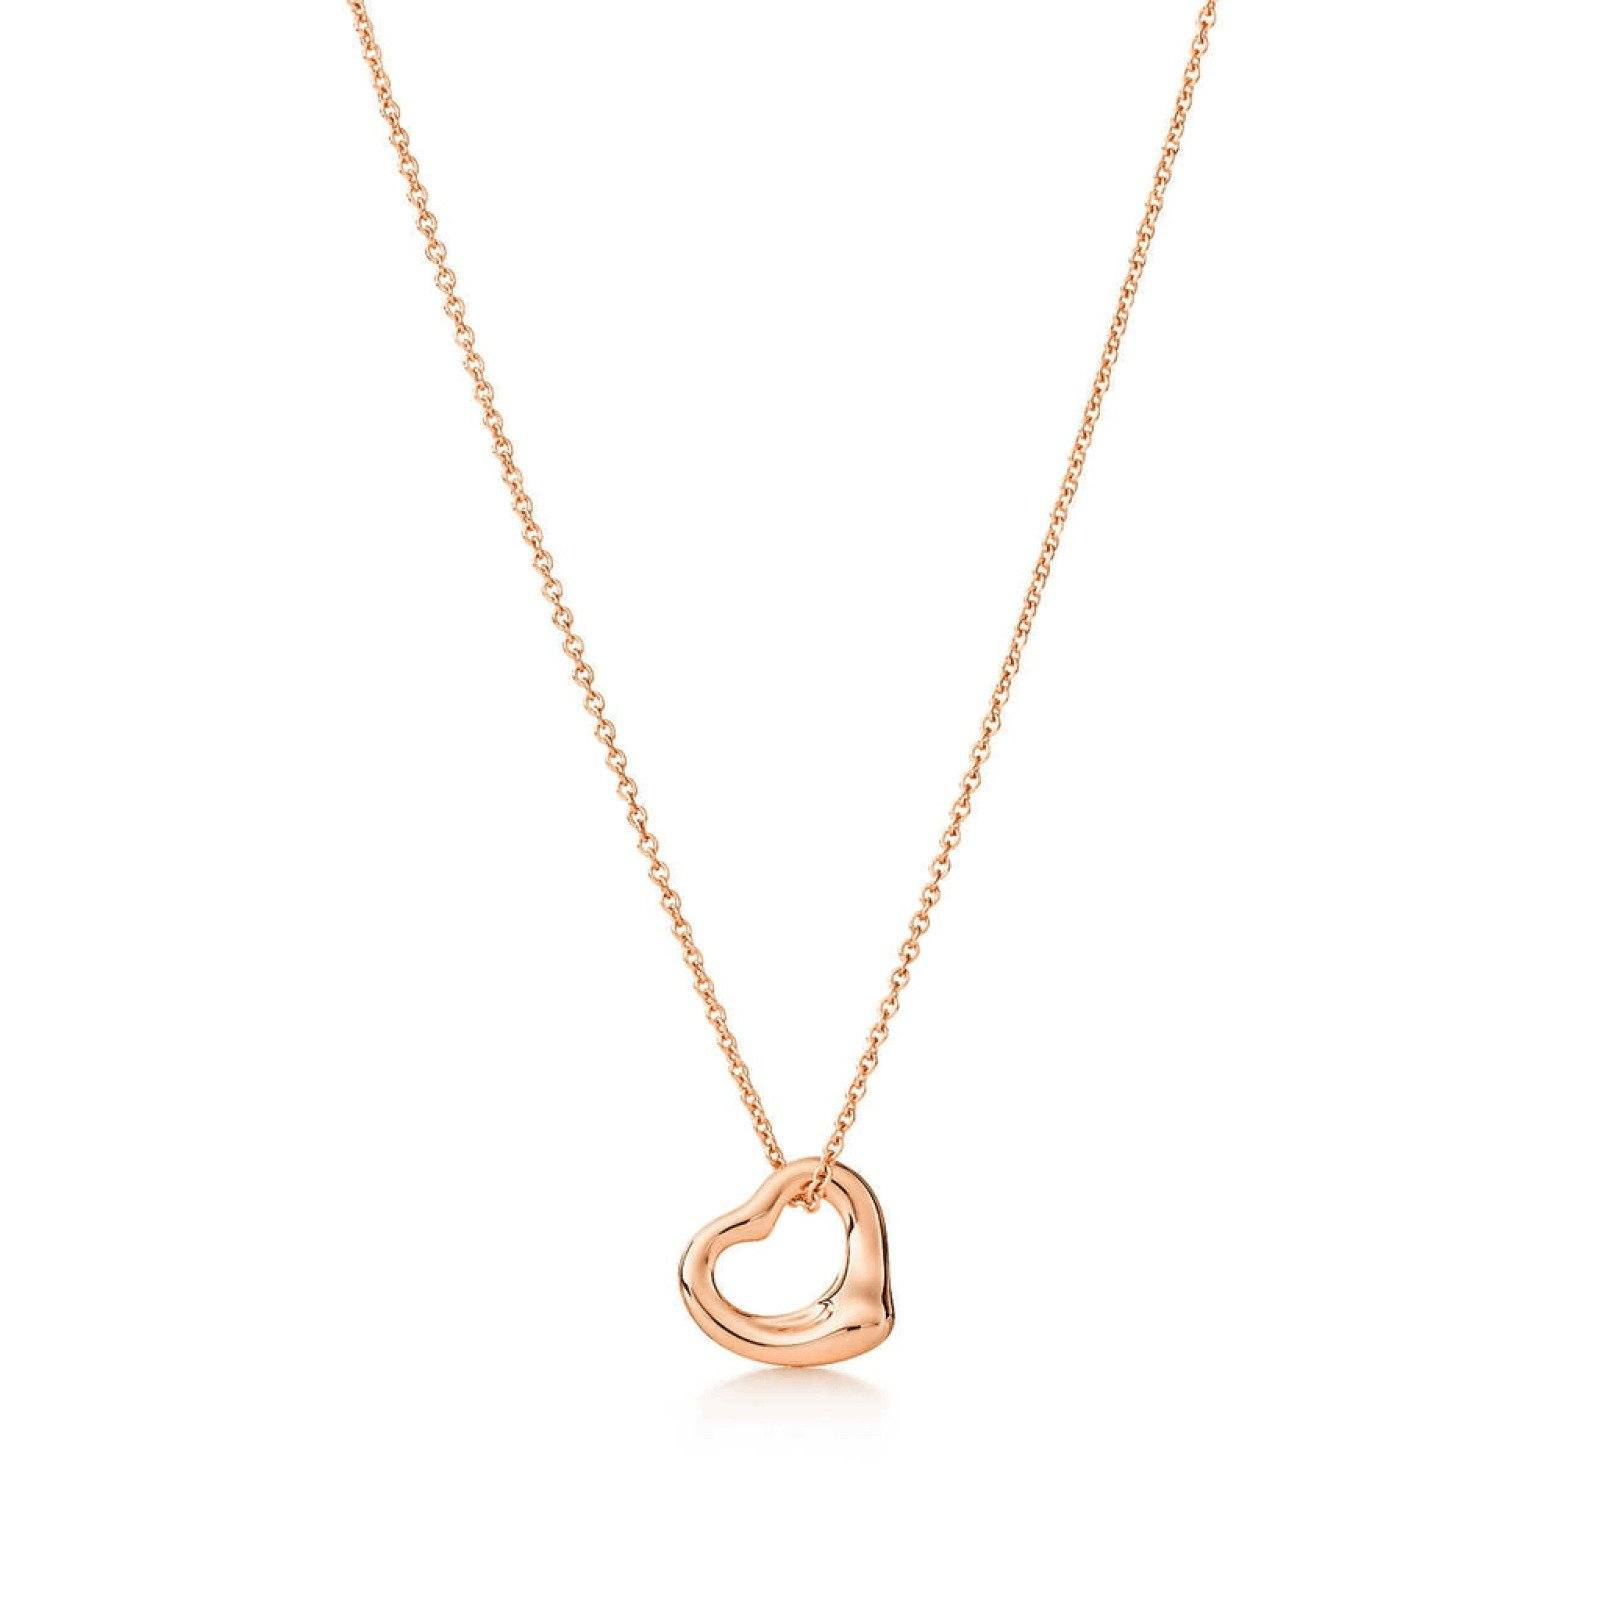 Tiffany elsa peretti open heart pendant necklace oliver jewellery tiffany elsa peretti open heart pendant necklace necklaces aloadofball